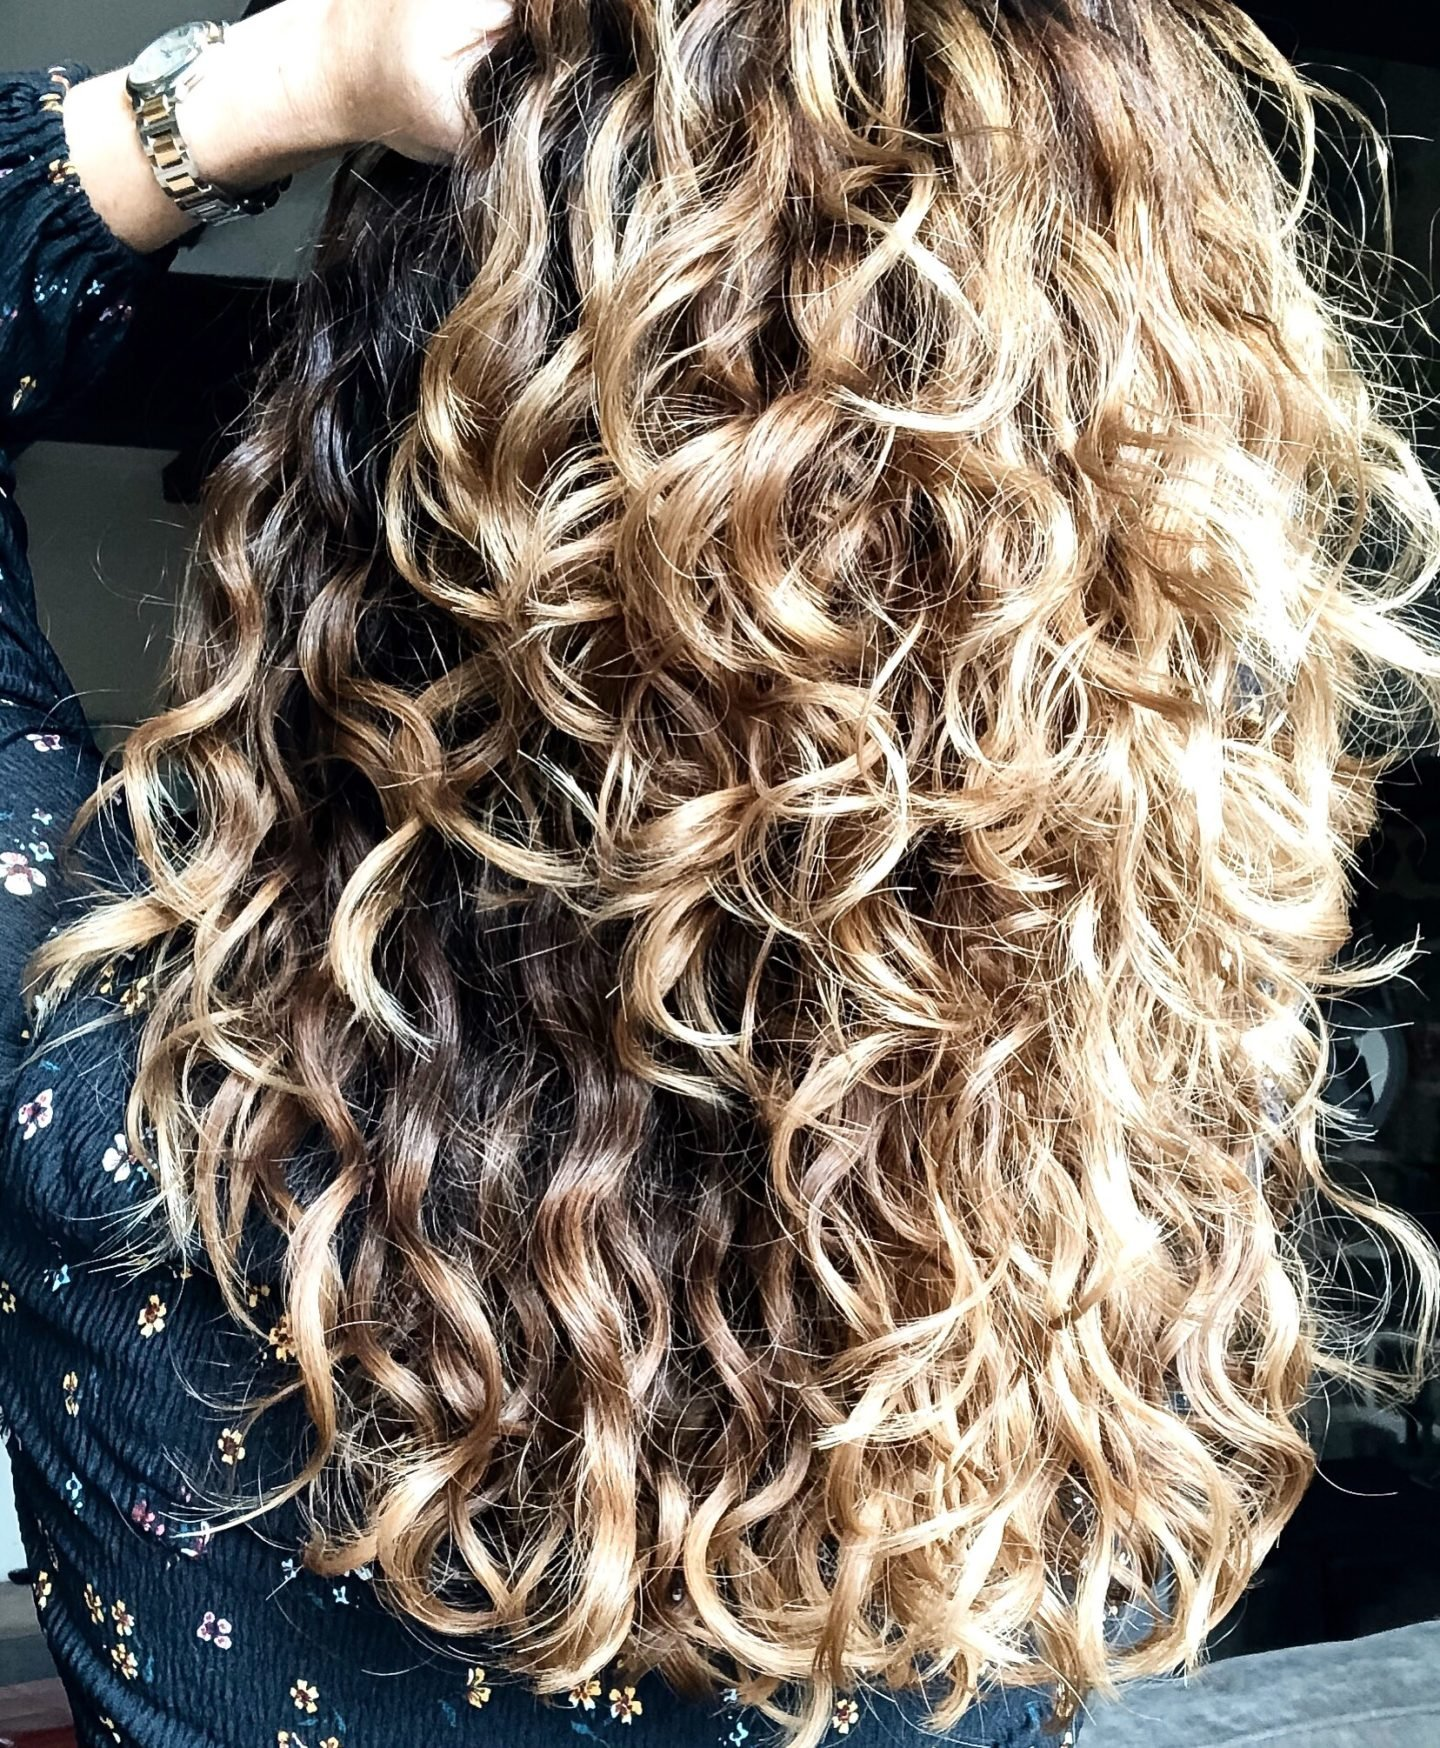 25 Ways On How To Style Naturally Curly Hair Without Heat